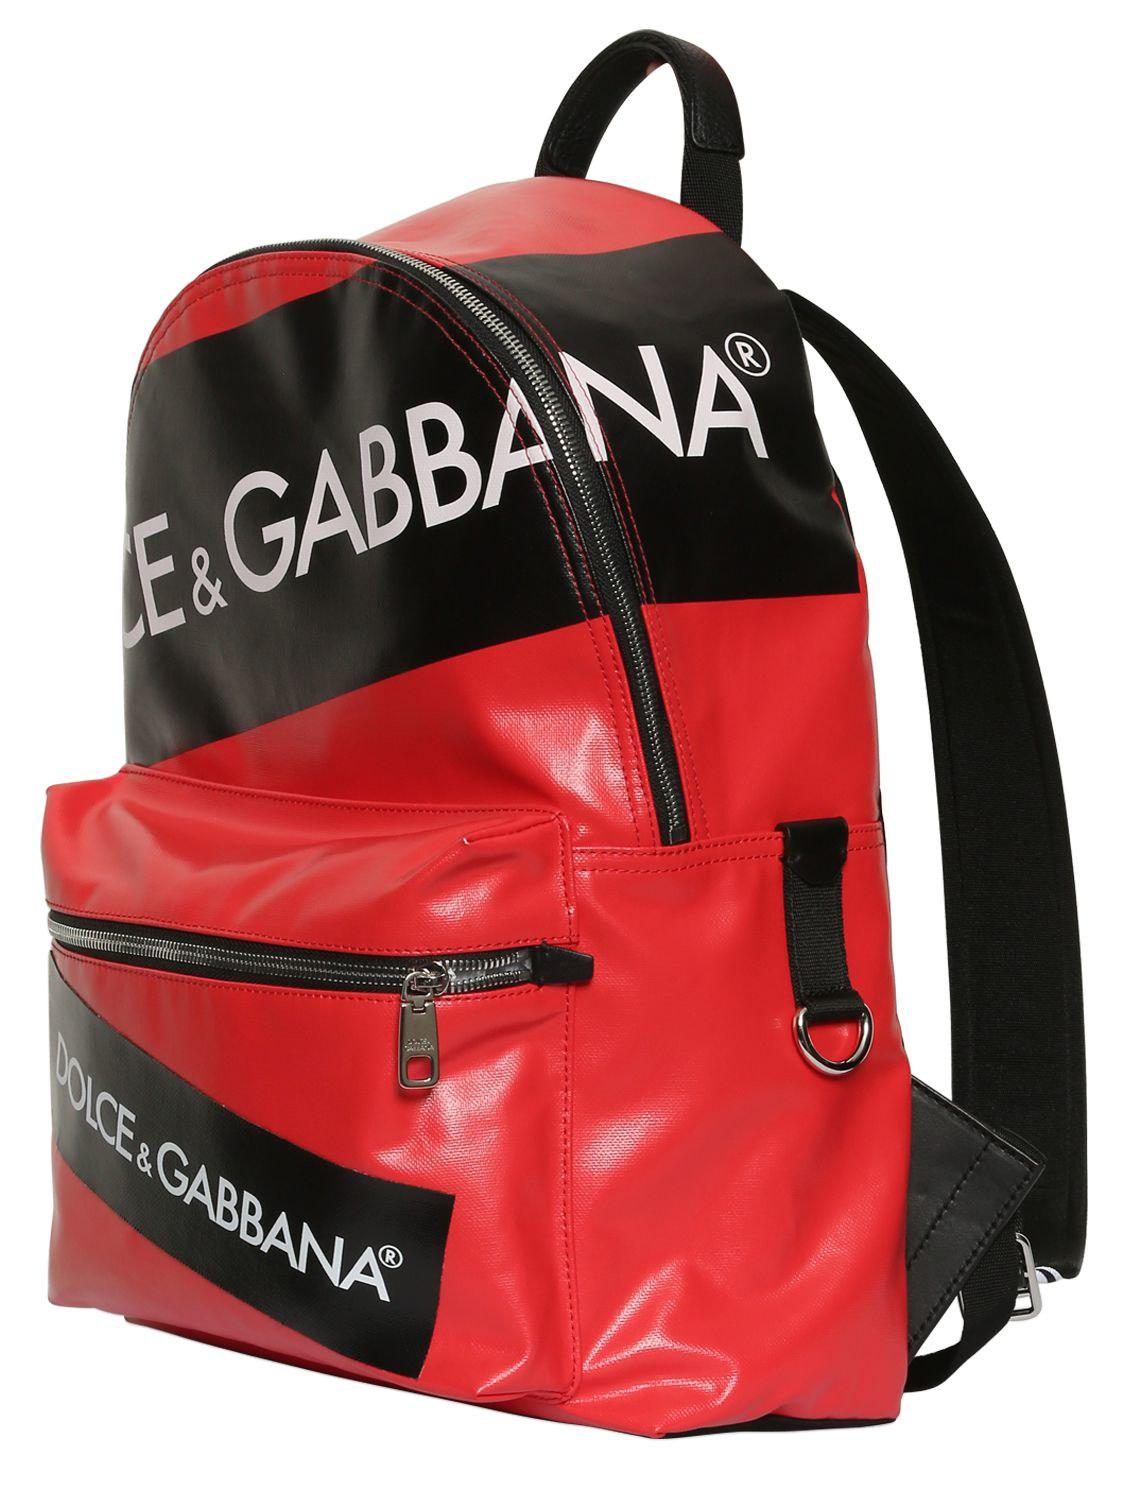 Dolce & Gabbana Leather Logo Tape Coated Cordura Backpack in Red for Men